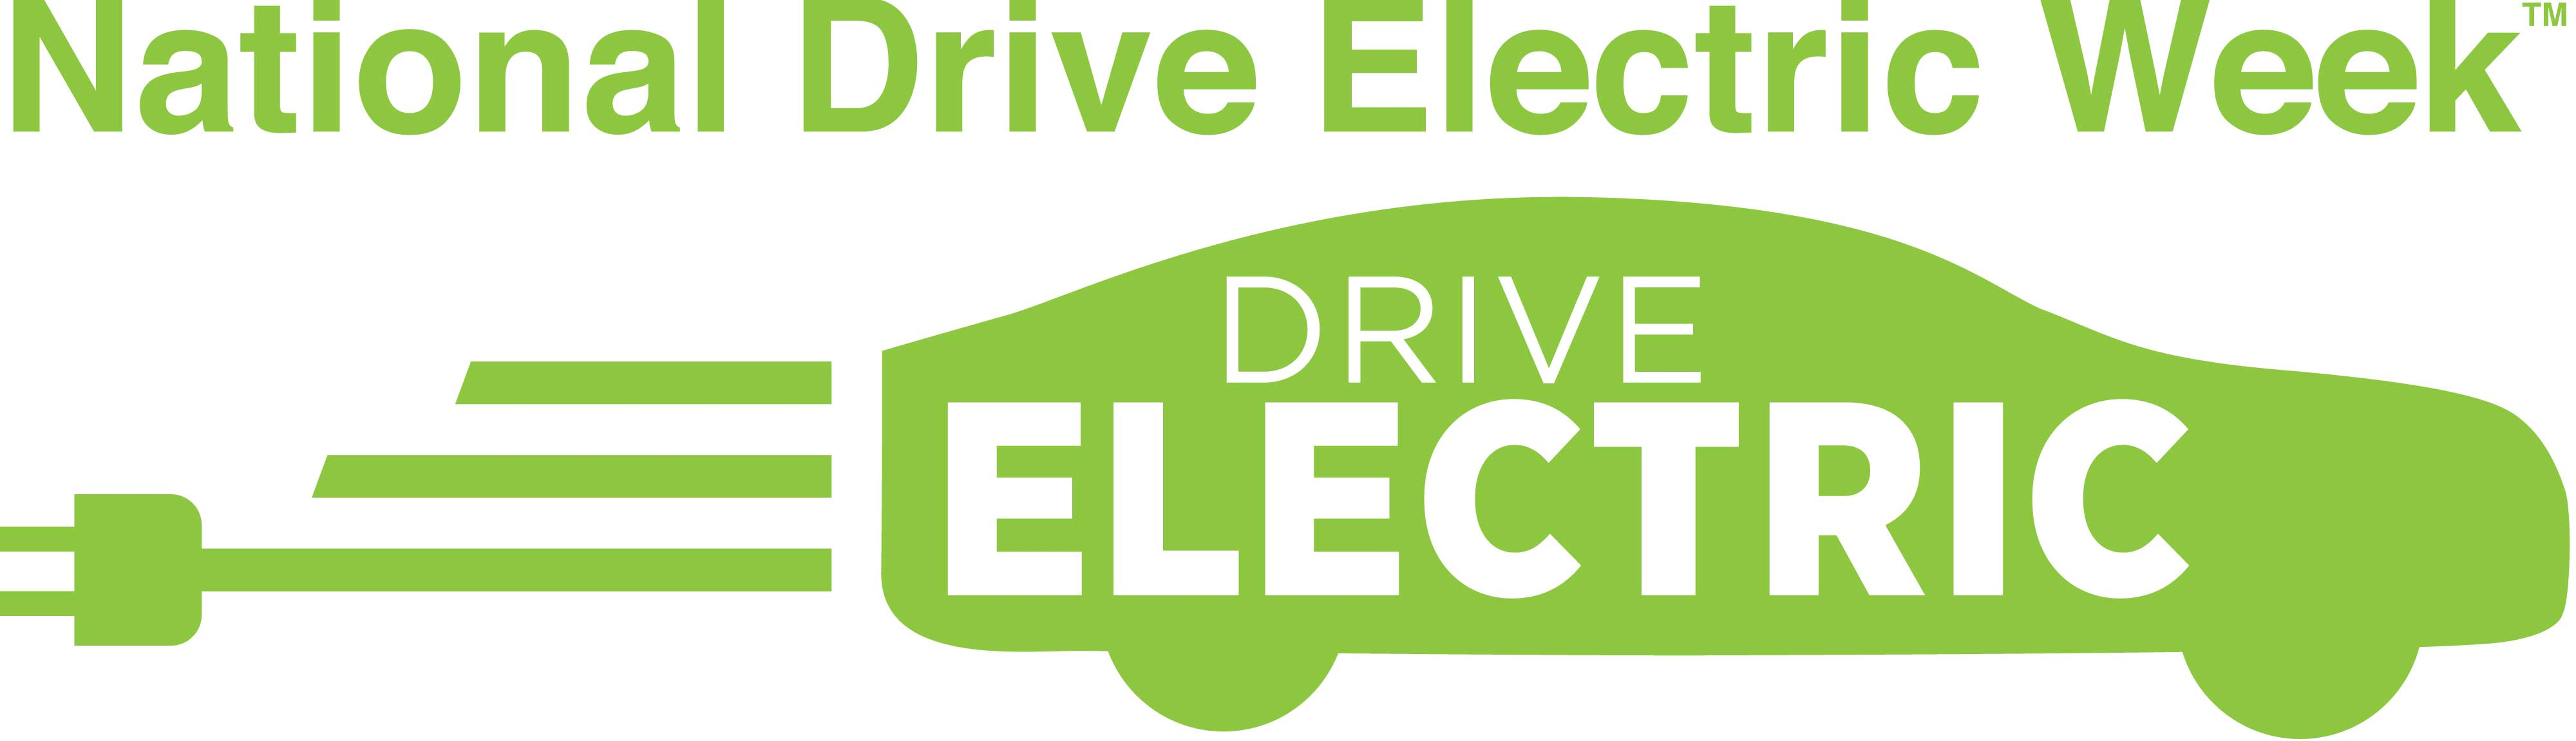 https://driveelectricweek.org/resources/ndew-logo-2015.jpg